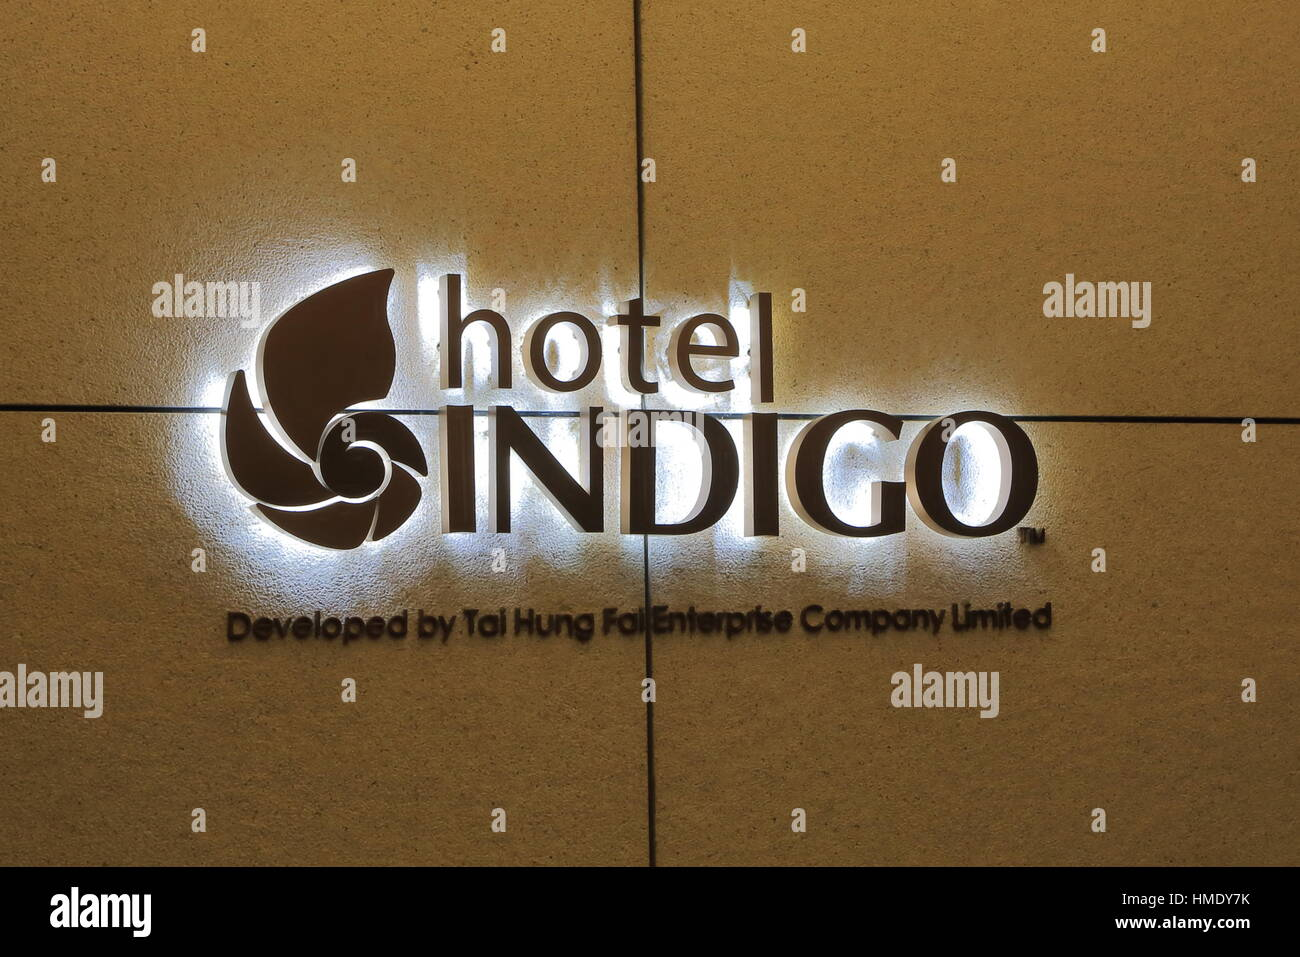 Hotel Indigo 5 star hotel. Hotel Indigo is a chain of boutique hotels and part of InterContinental Hotels Group. - Stock Image